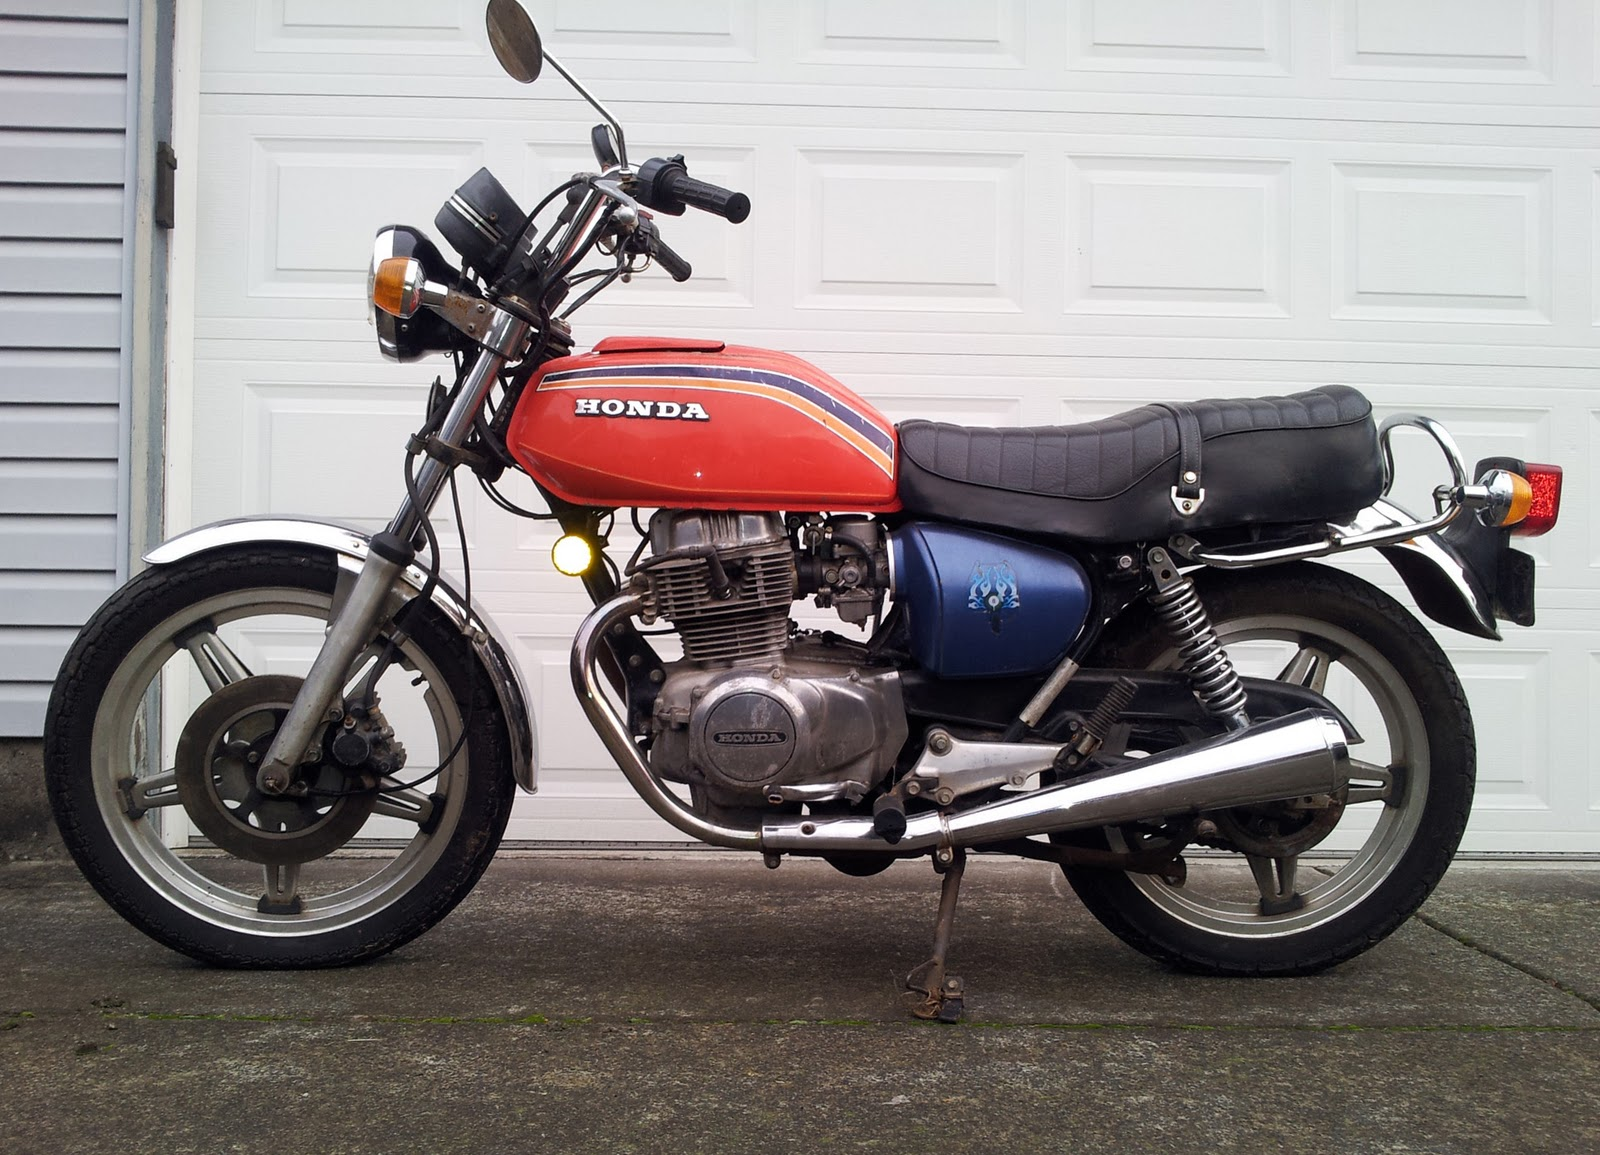 1978 honda cb400 wiring diagram microbiology prokaryotic cell labeled mine and co cb400t